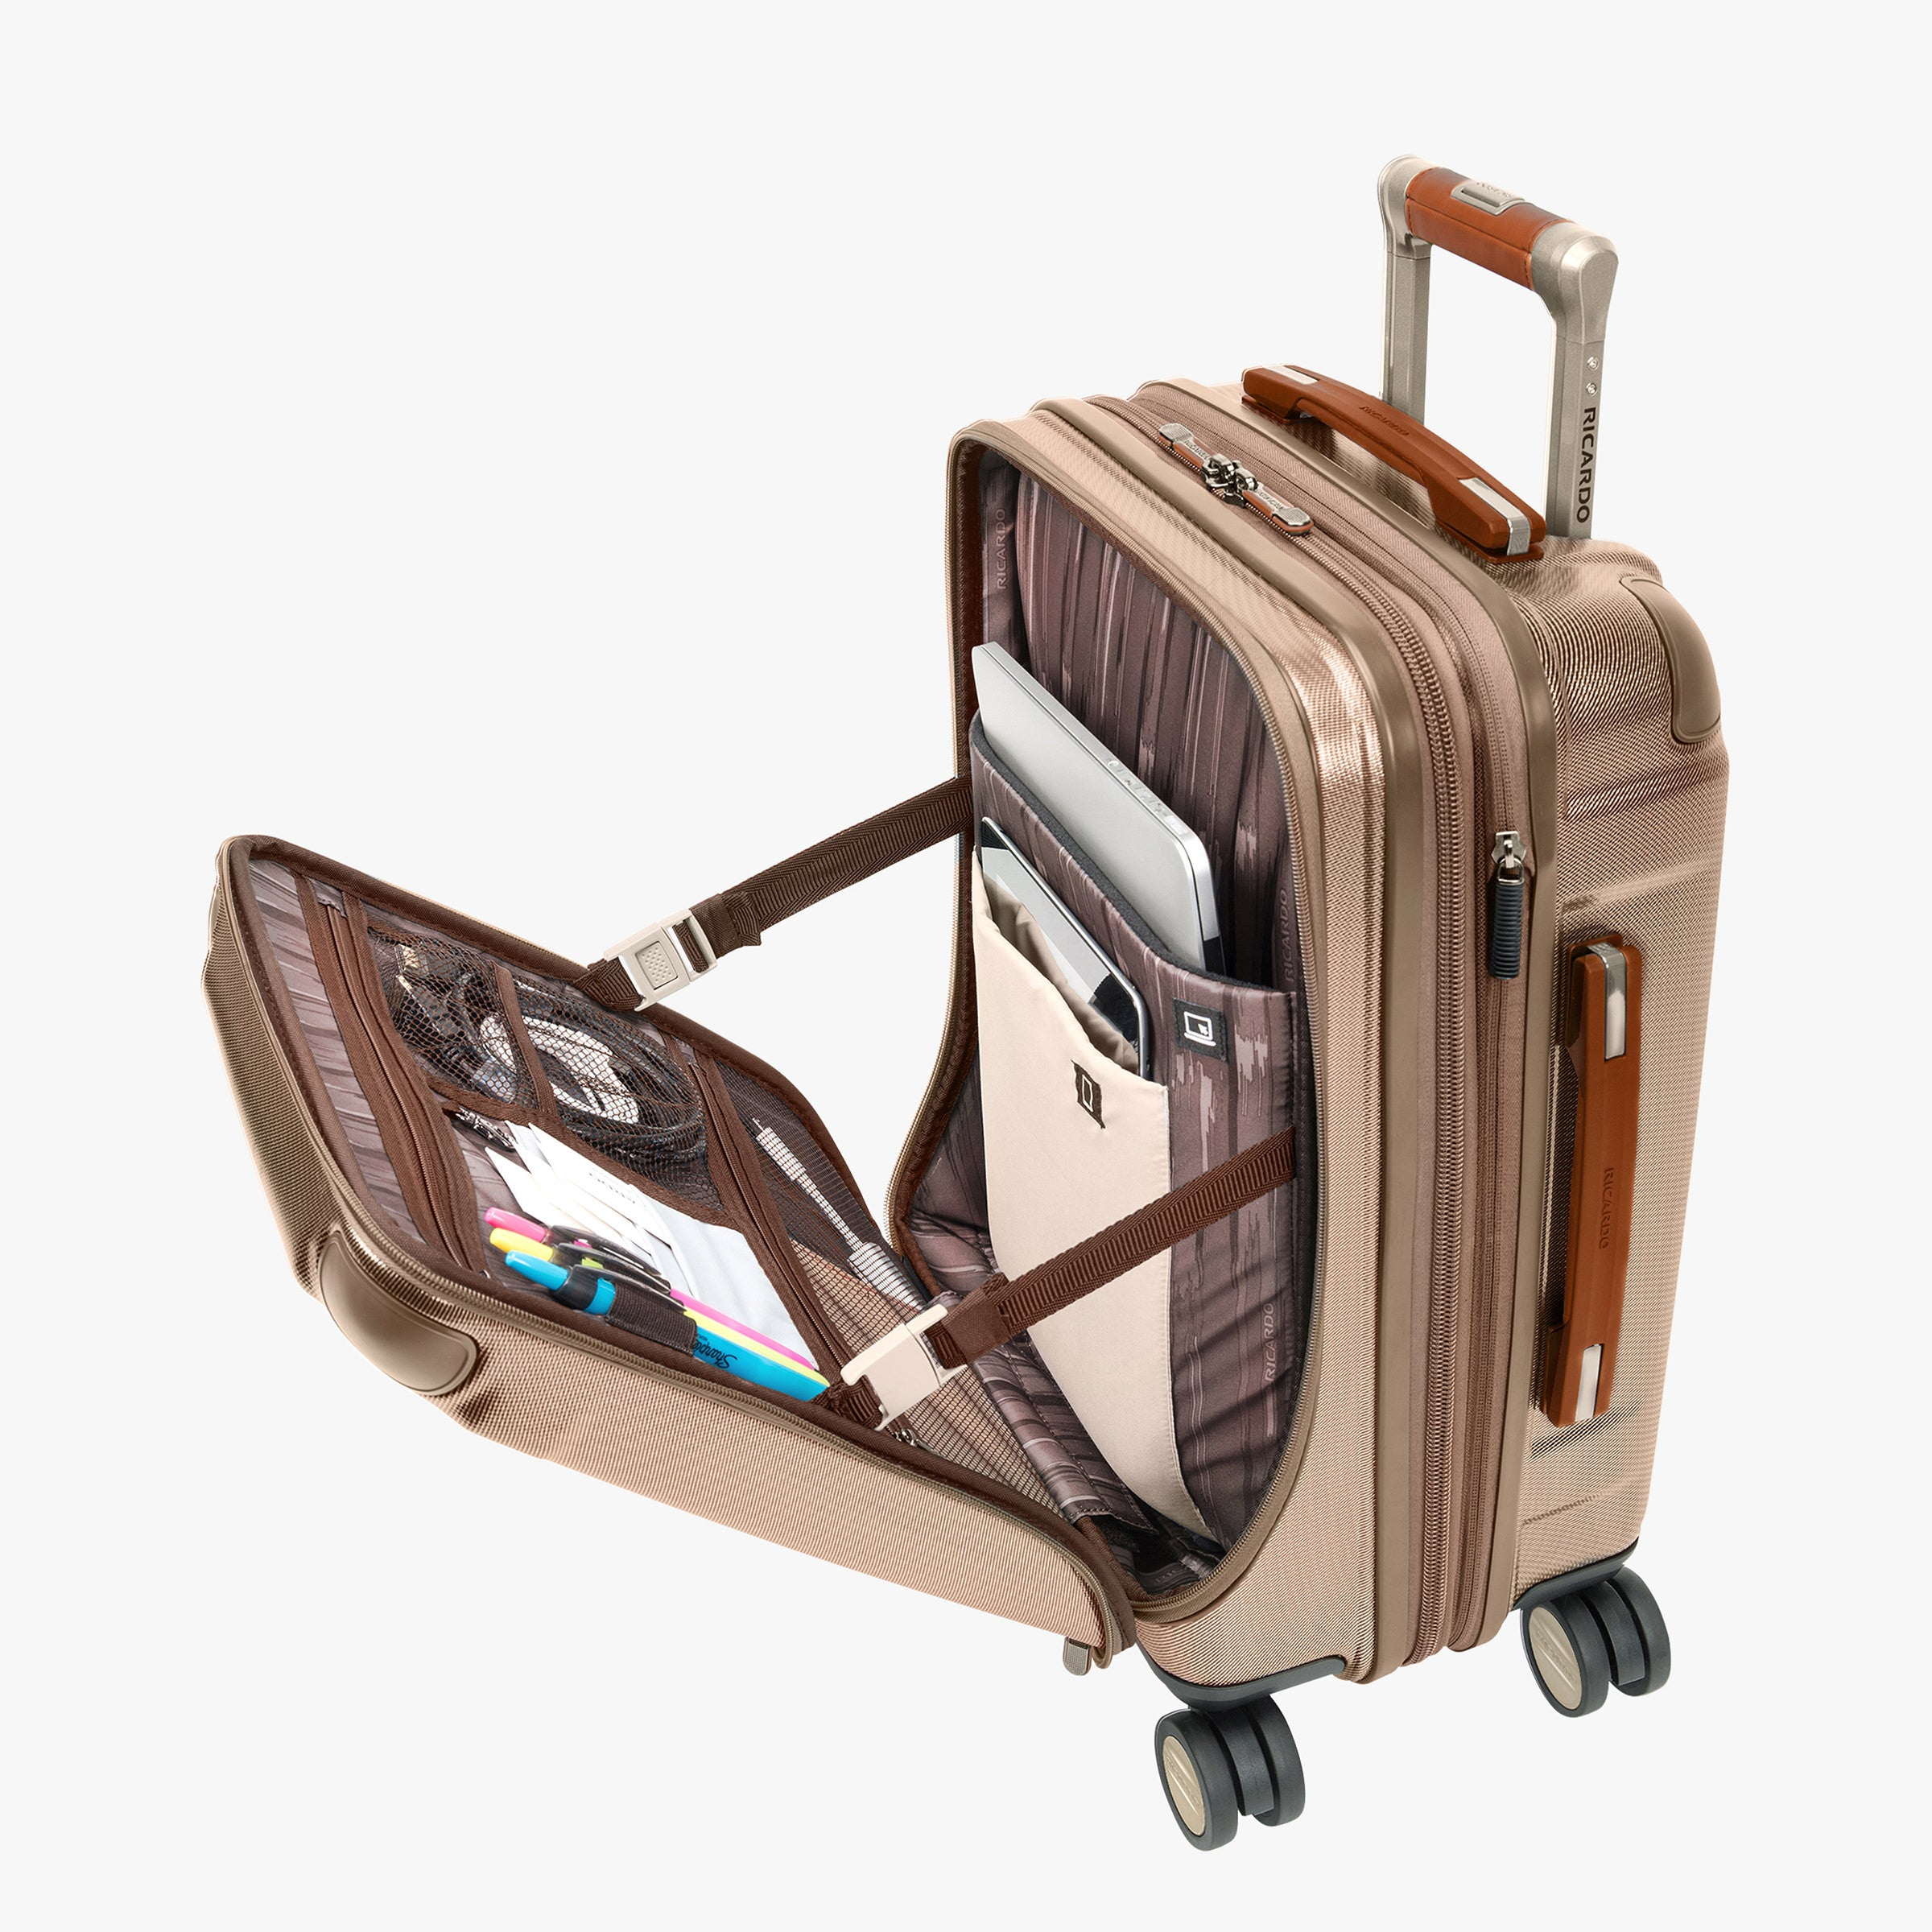 Ocean Drive Mobile Office Carry On Spinner Suitcase